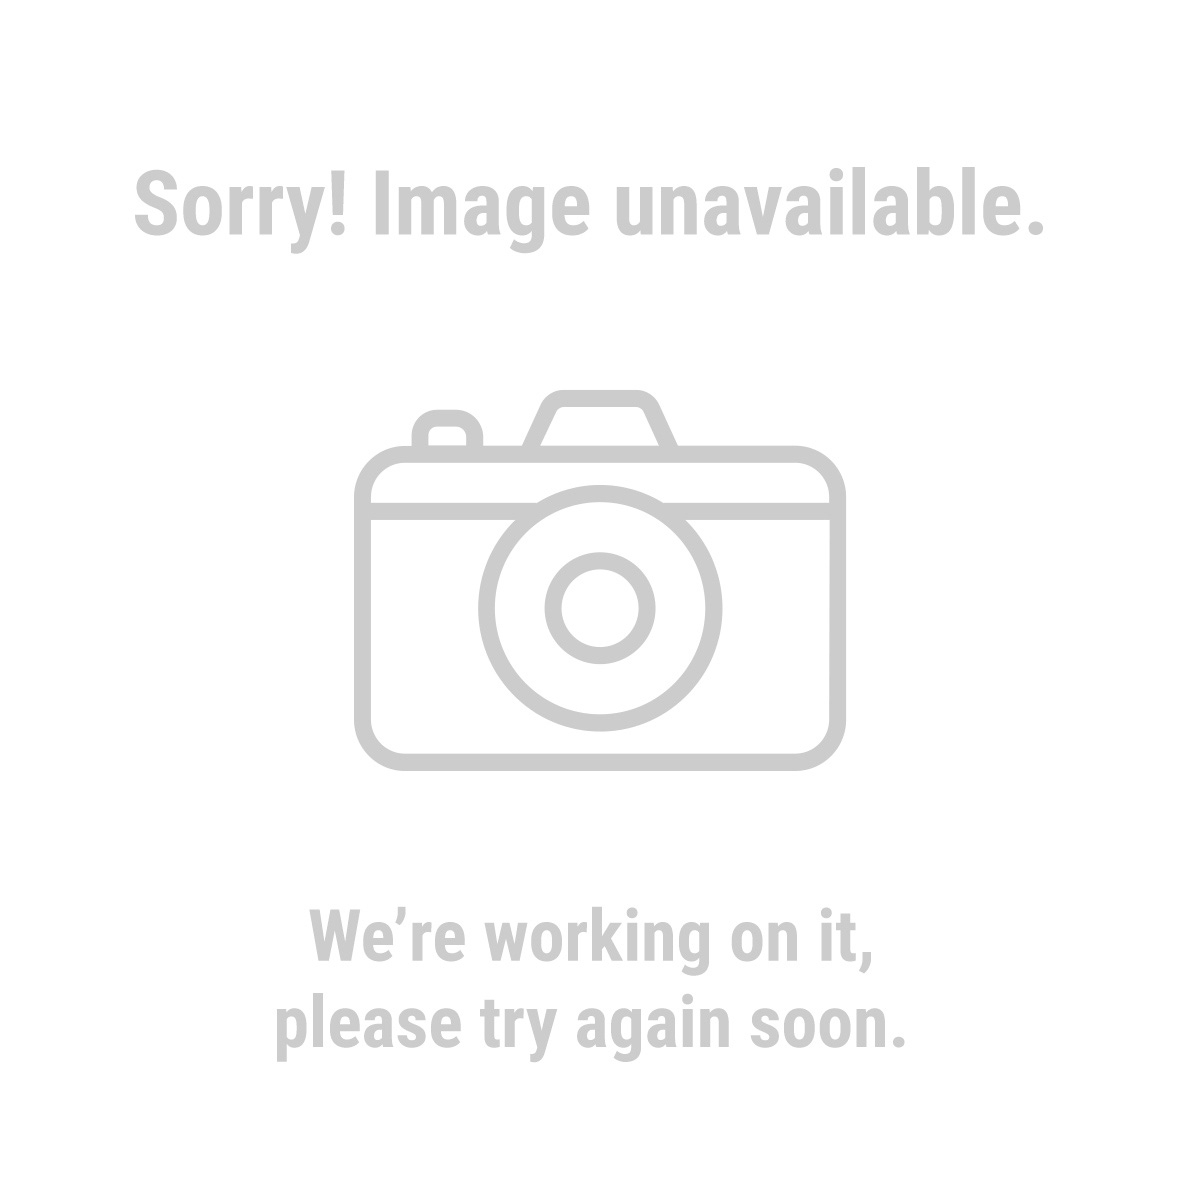 Central Pneumatic 61963 25 ft. x 3/8 in. Heavy Duty Premium Rubber Air Hose